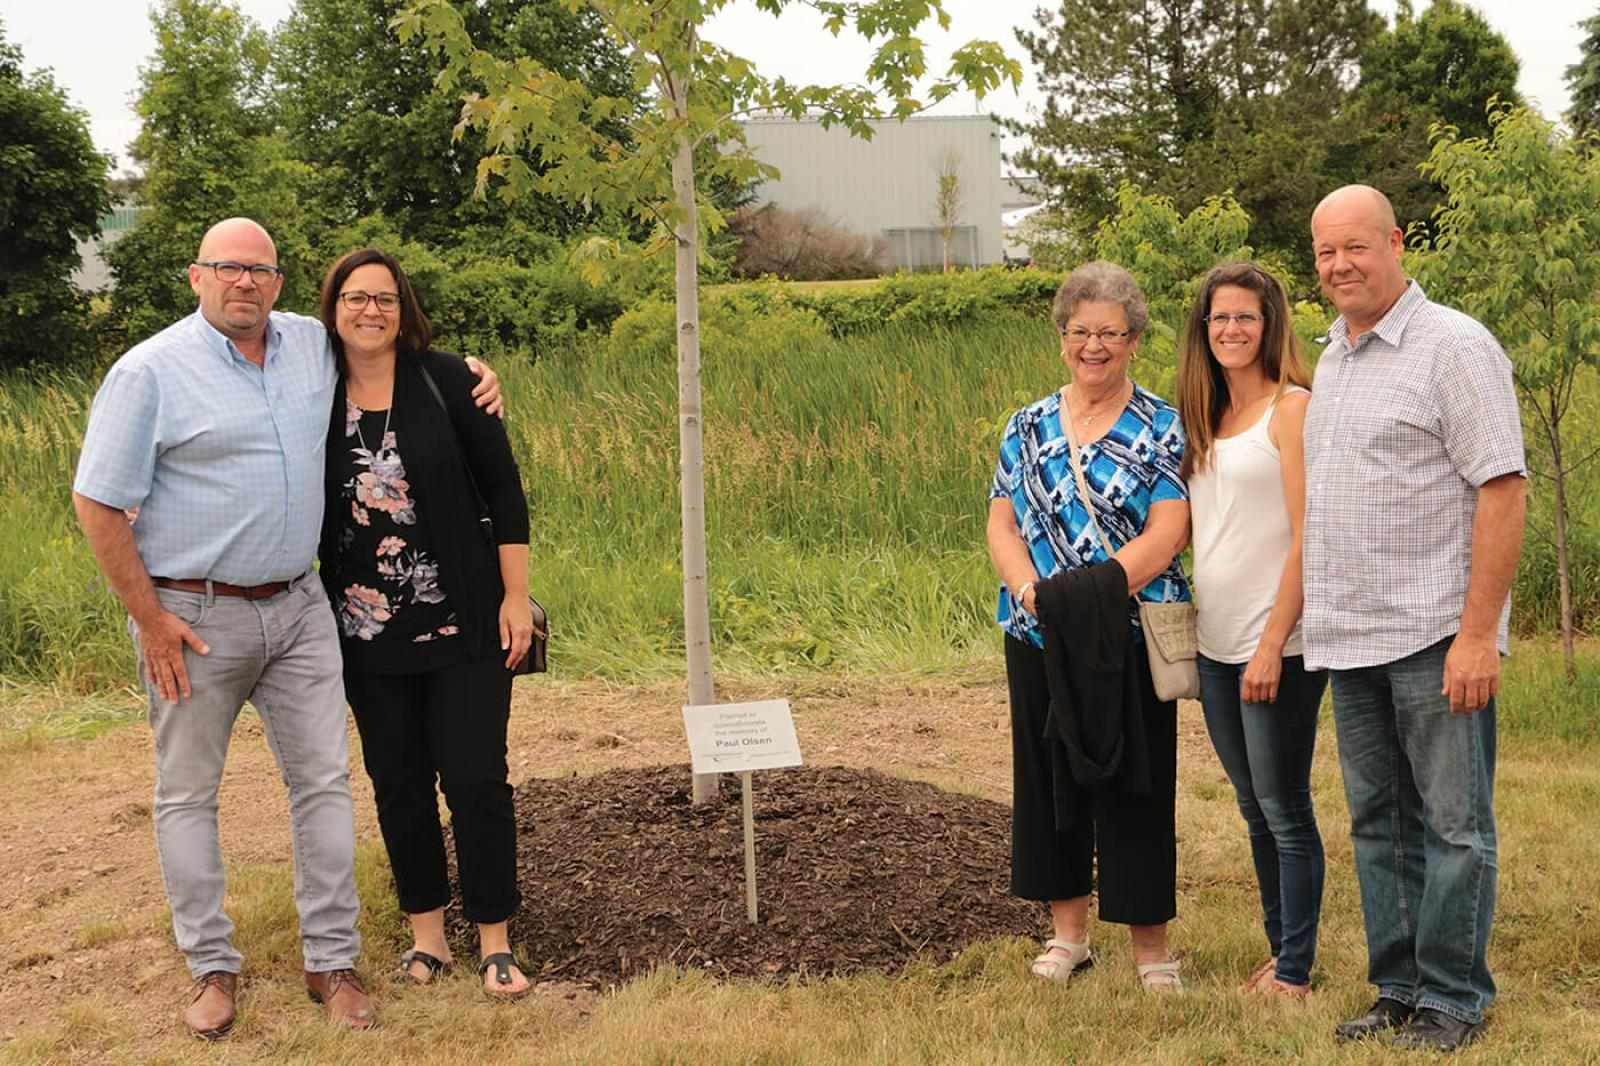 Memorial tree planted for Paul Olsen